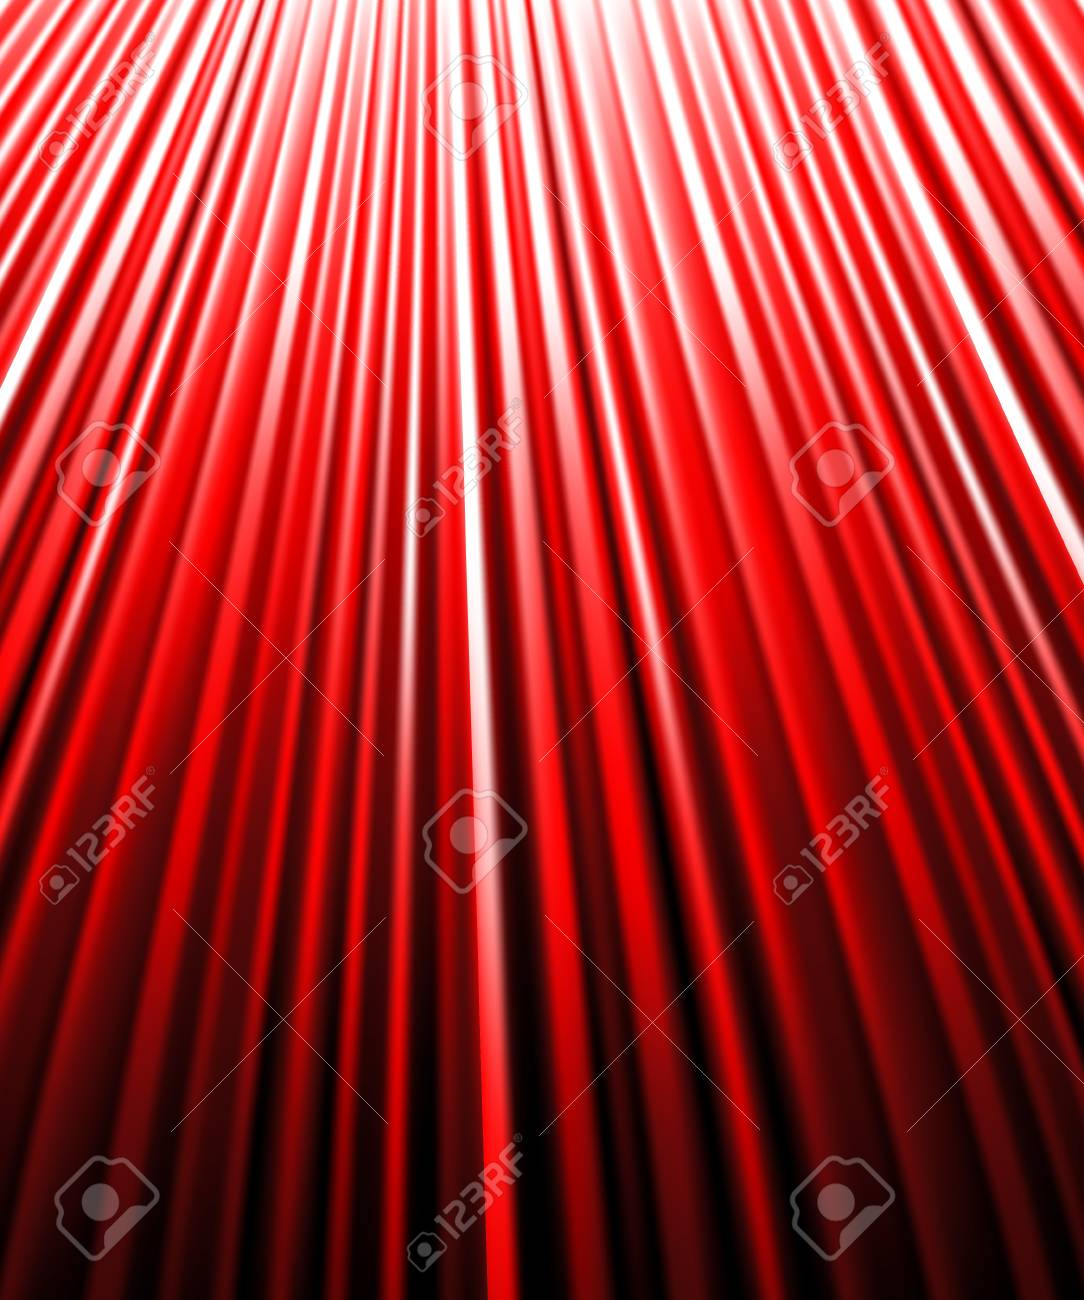 background of redluminous rays. Vector illustration. Stock Vector - 28136333